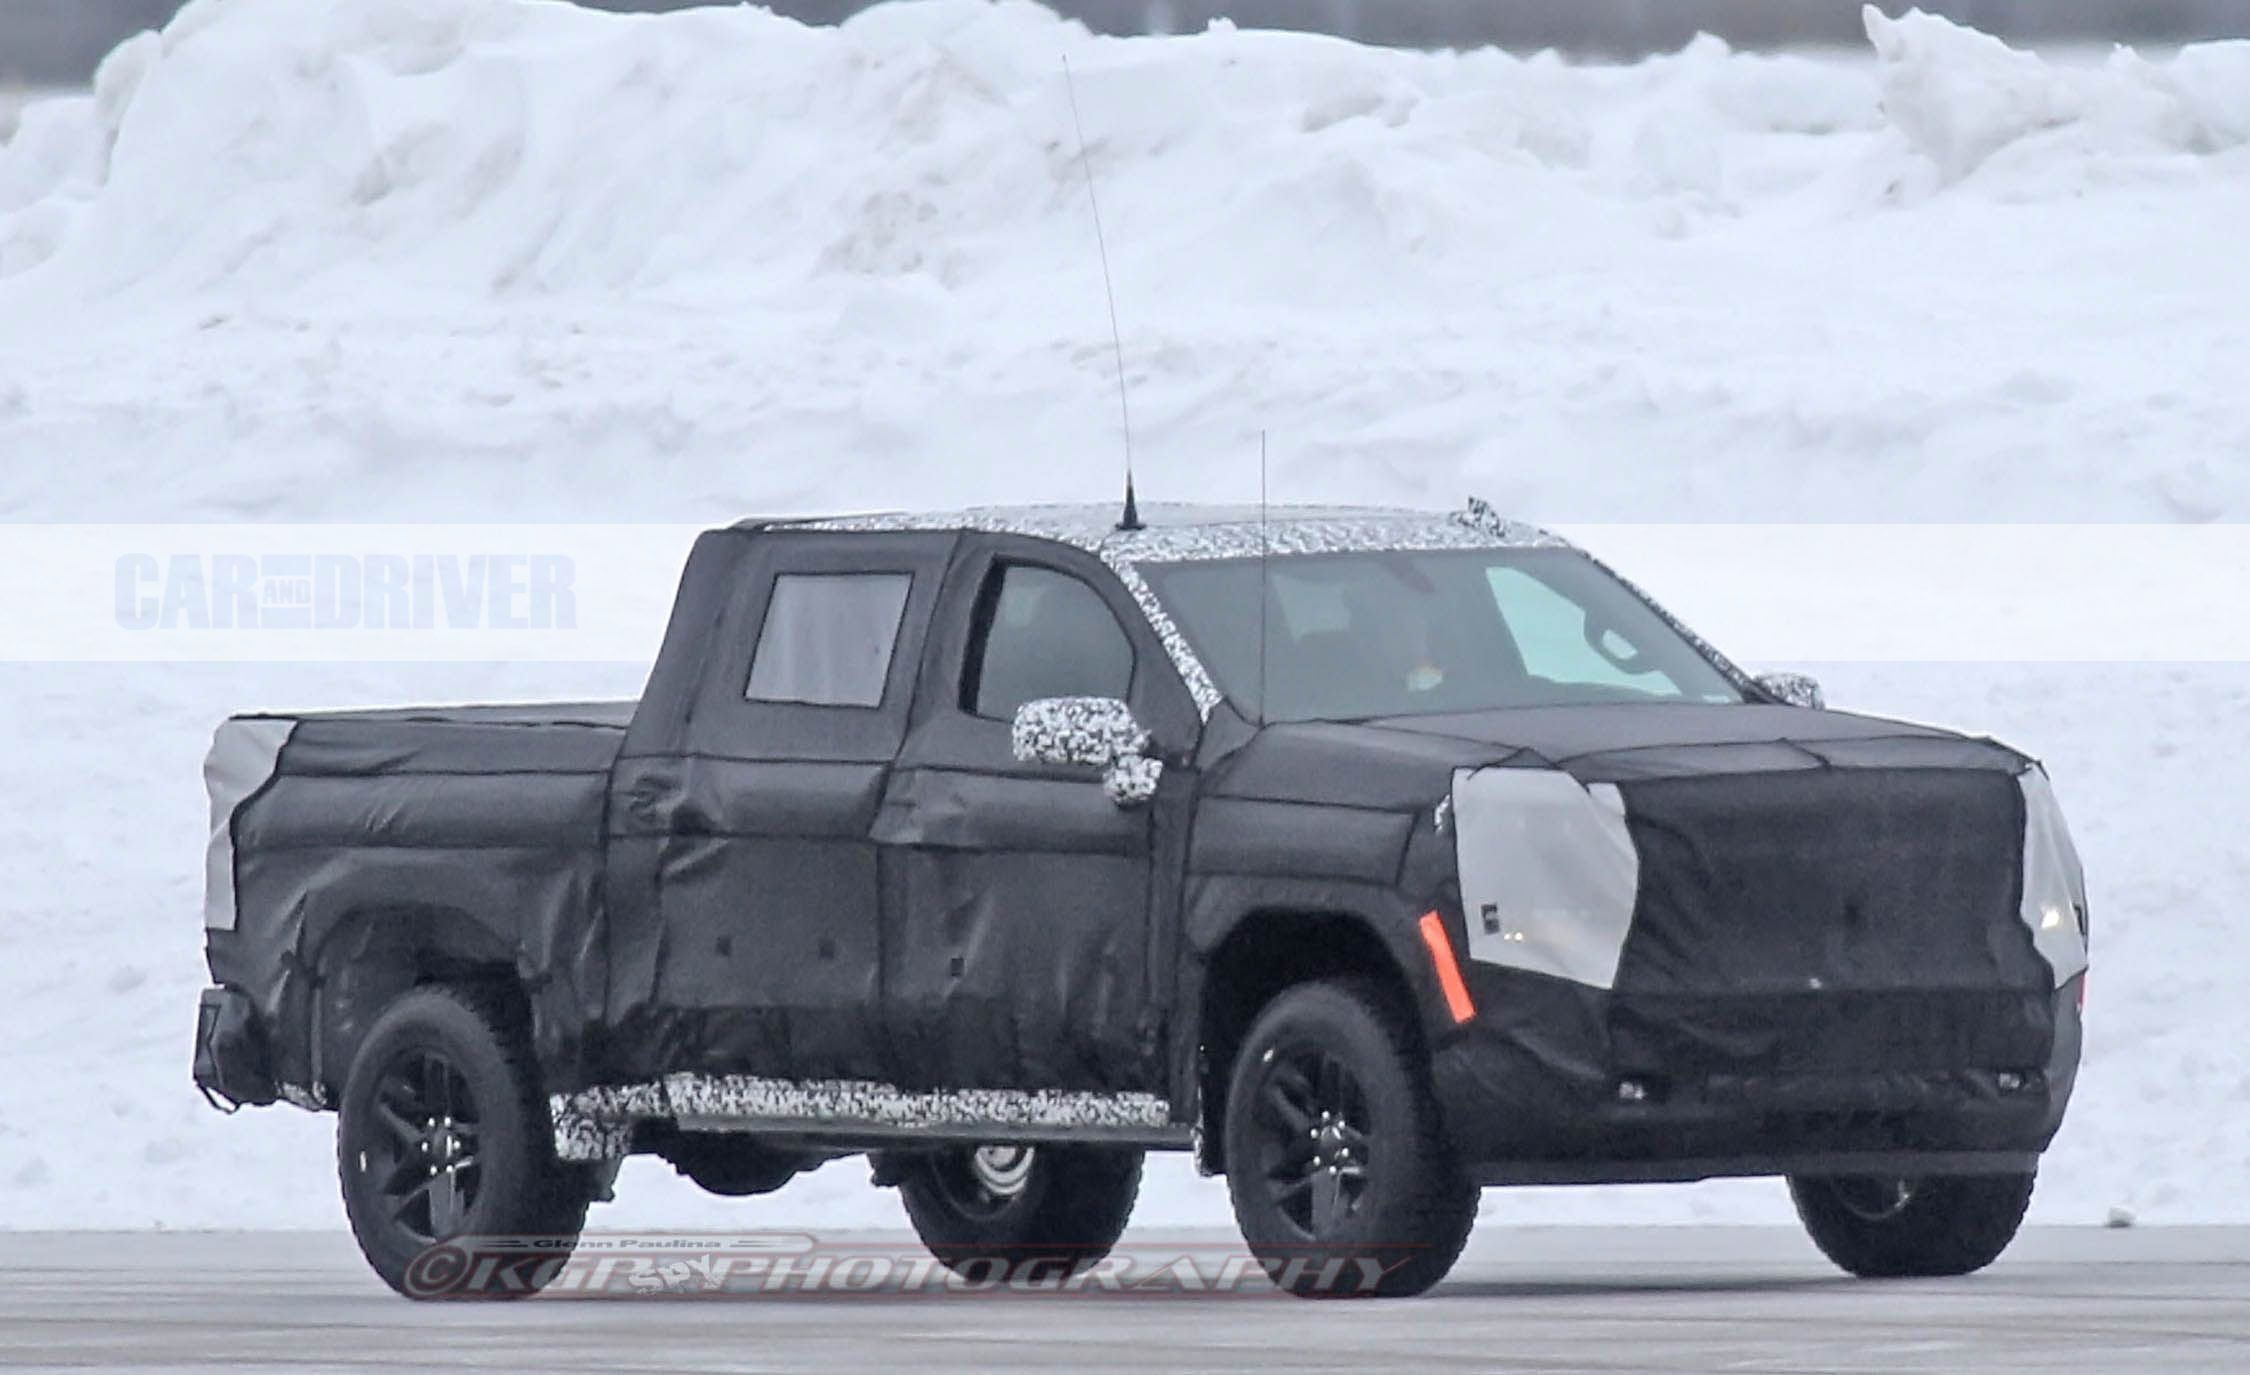 2019 Chevrolet Silverado 1500 Spy Photos: Real Photos, Not Renderings